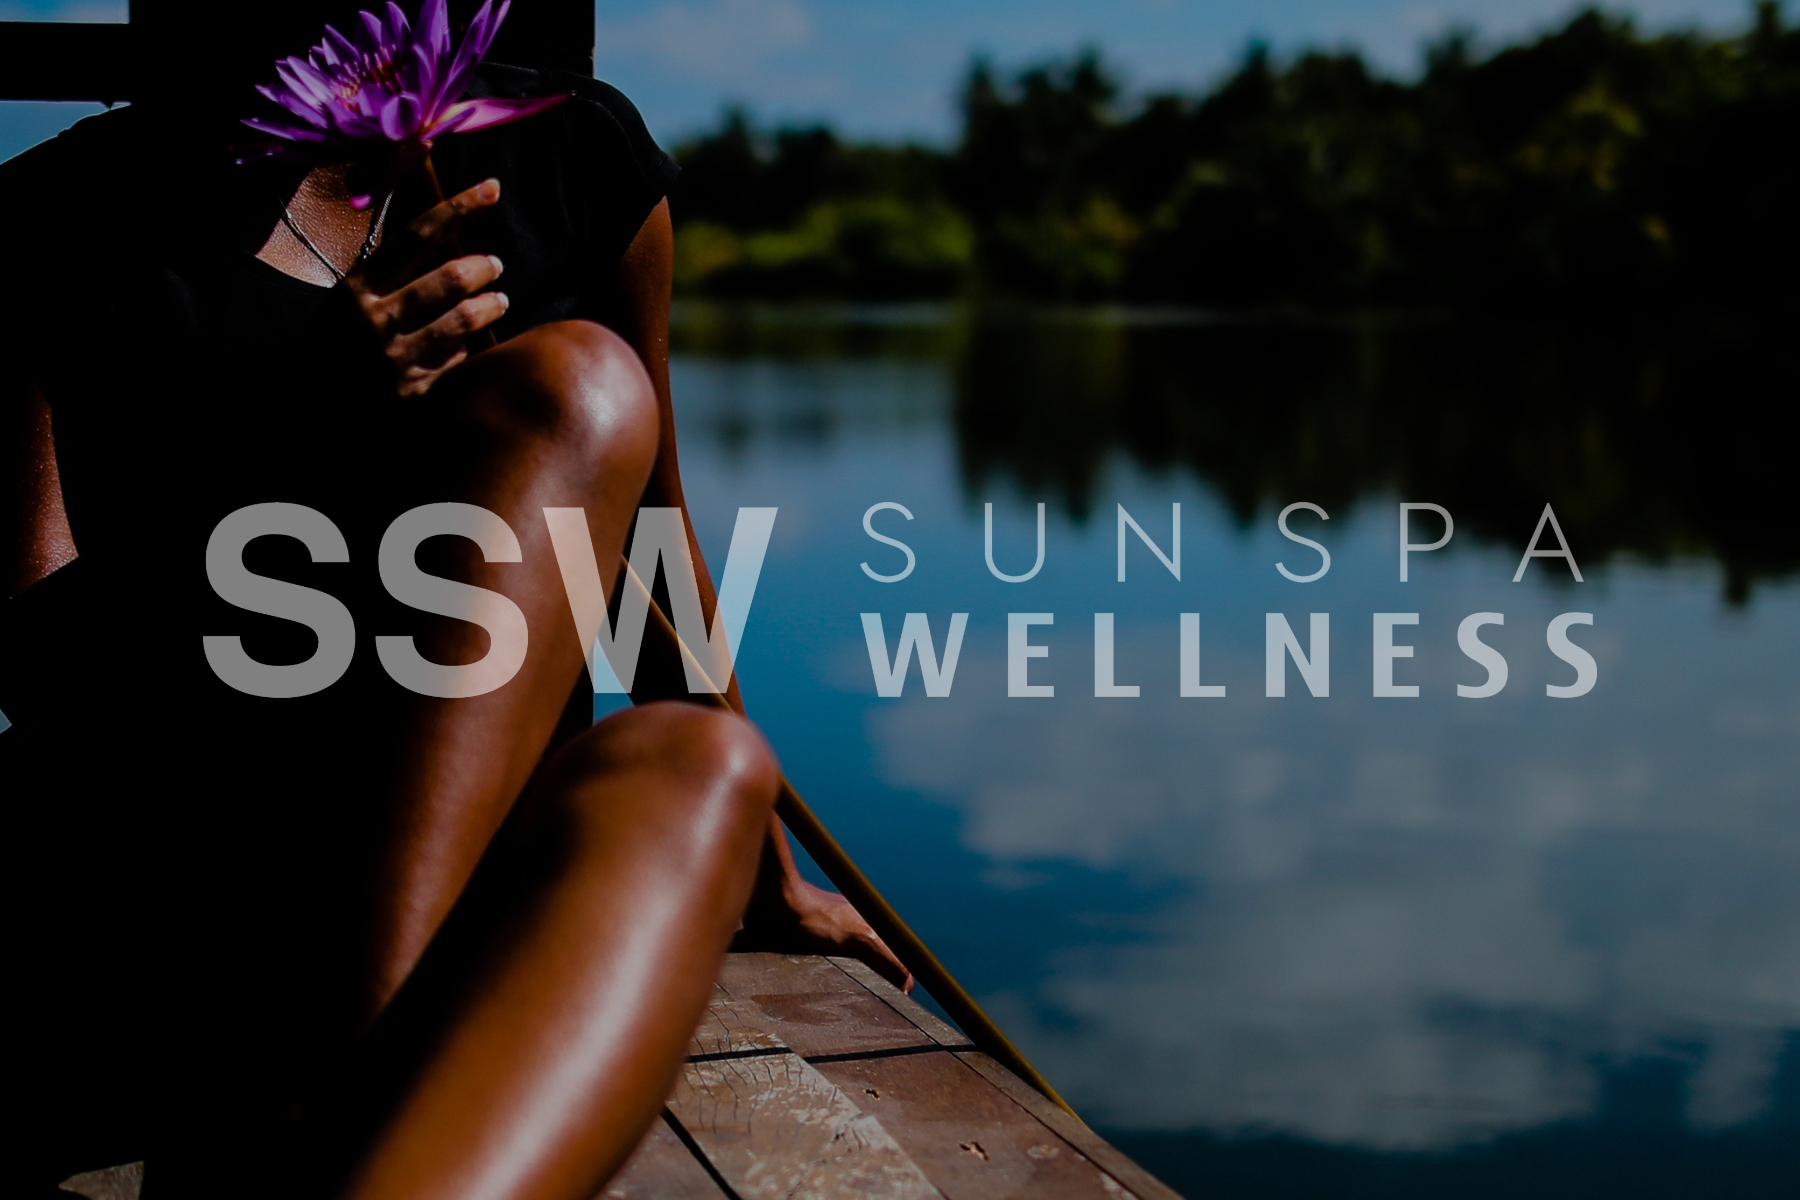 Sun Spa Wellness - For more than 30 years, we have helped thousands of people to own and operate successful tanning salons, spas, health clubs, beauty salons, and wellness, weight loss and massage centers.